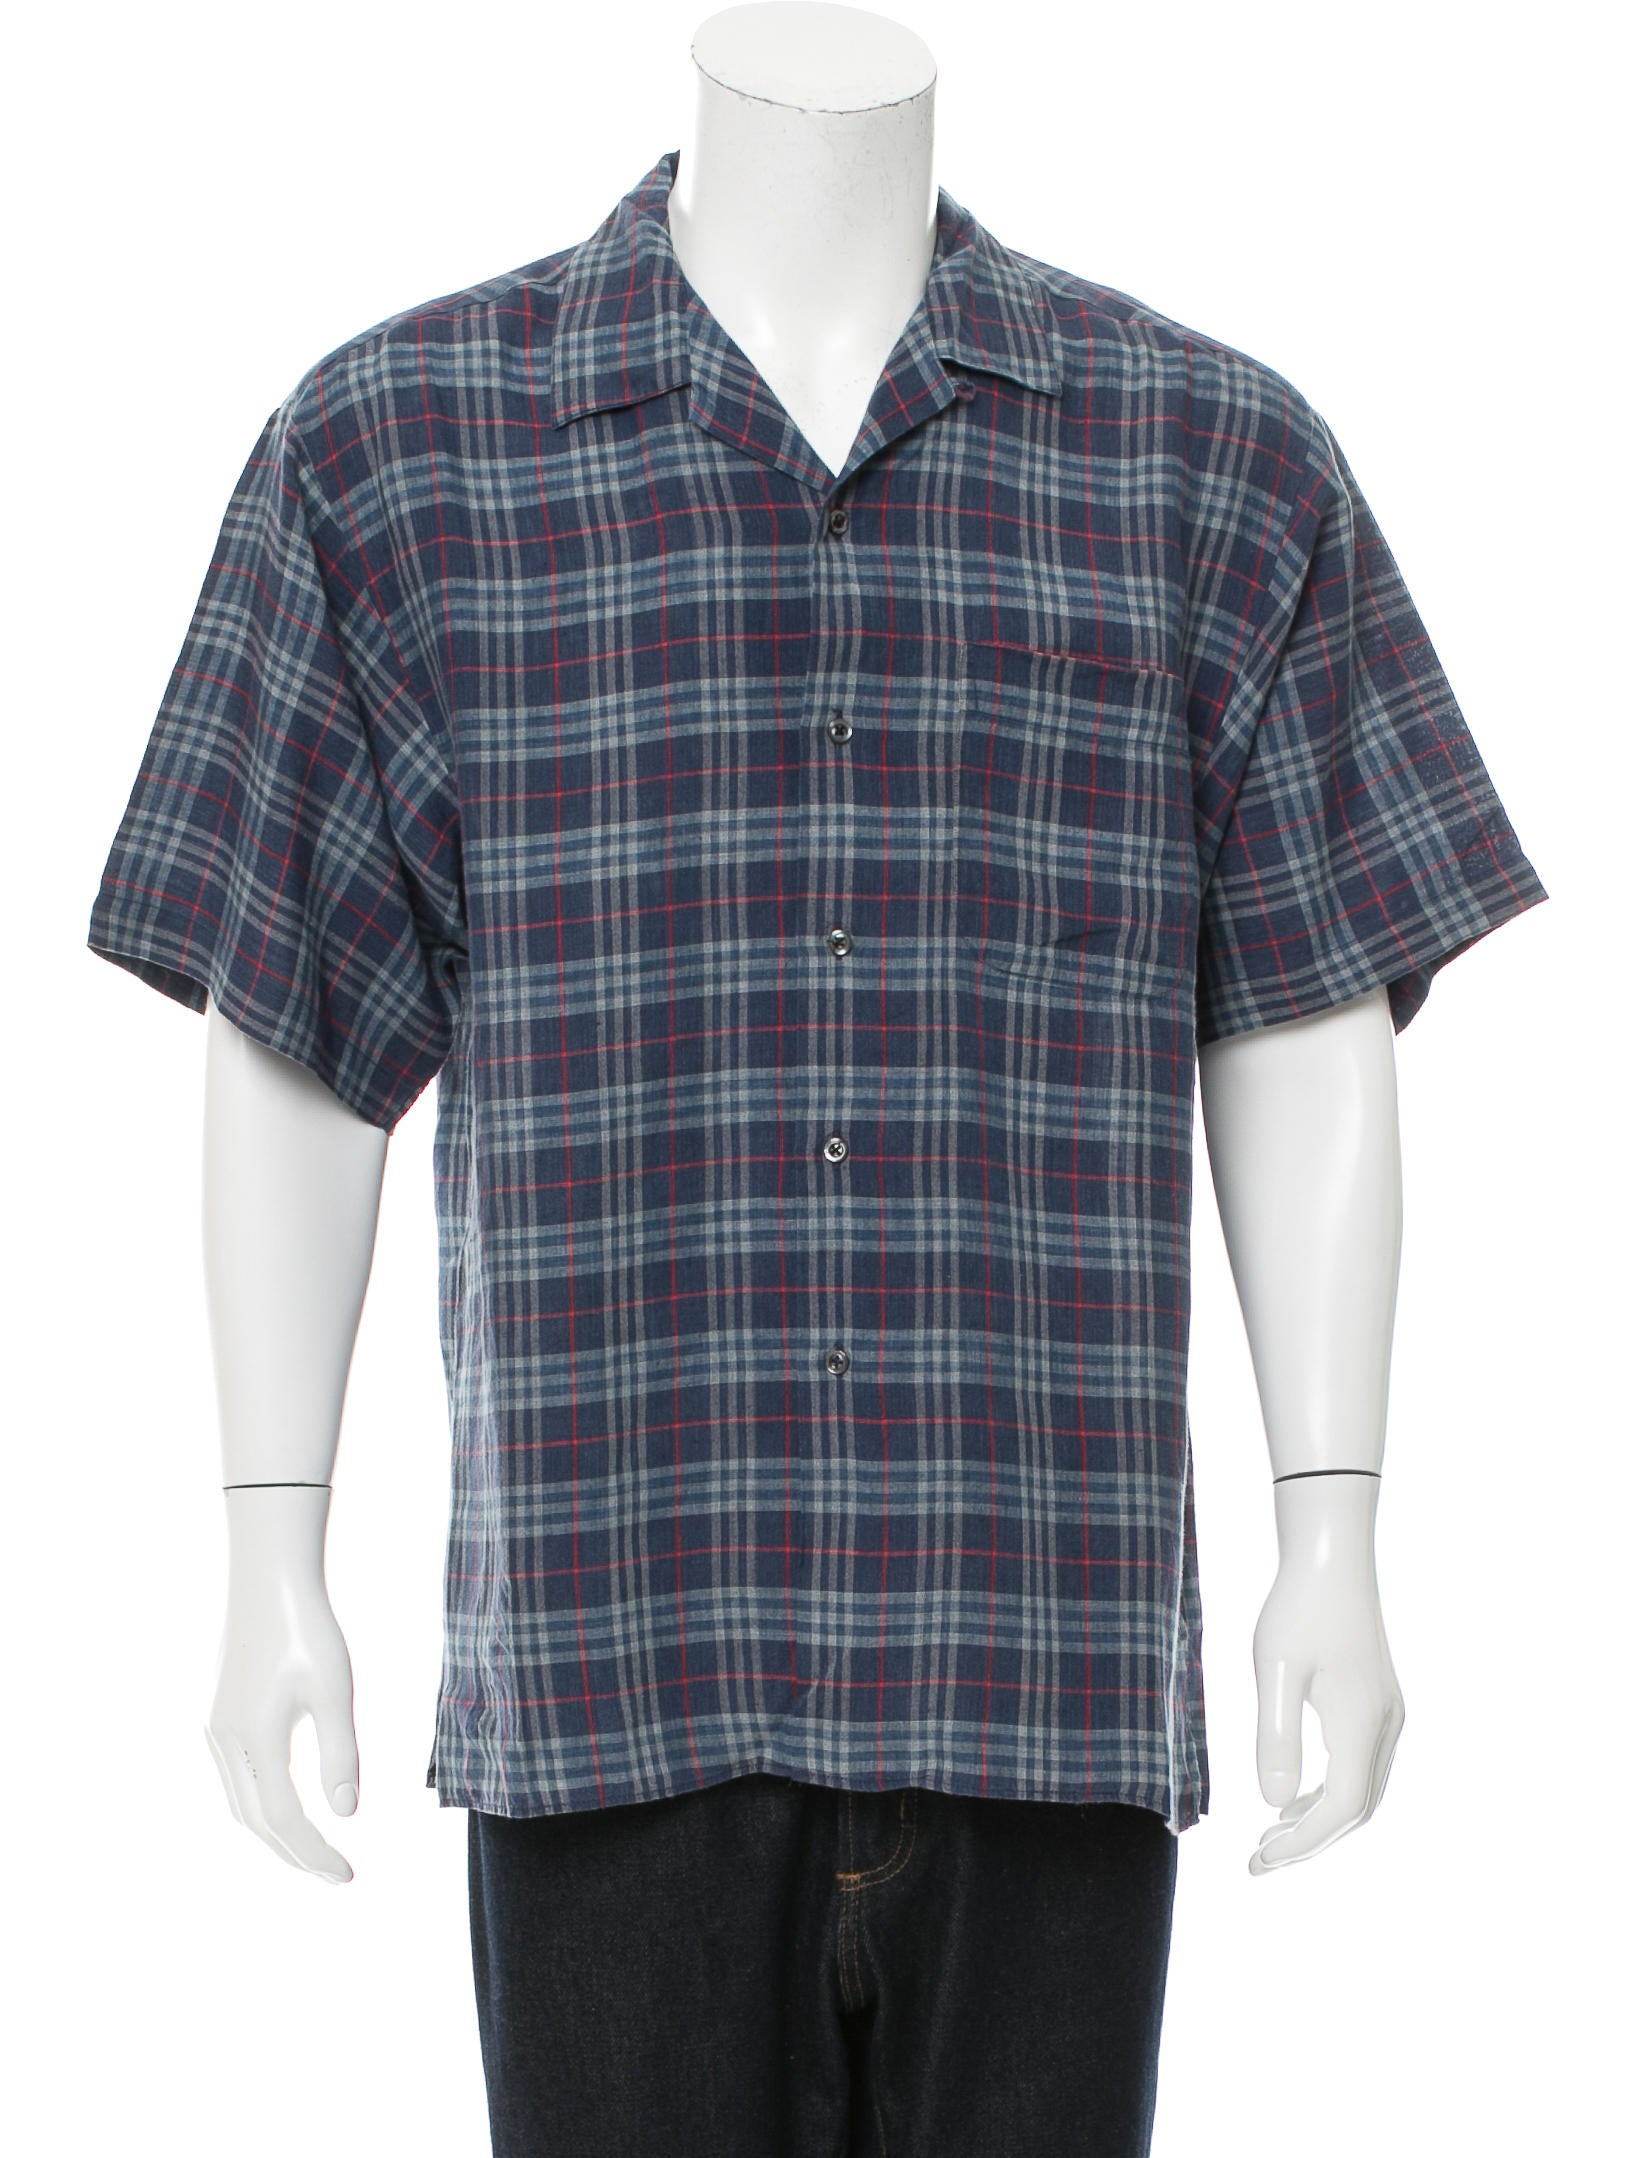 Burberry London House Check Button Up Shirt Clothing